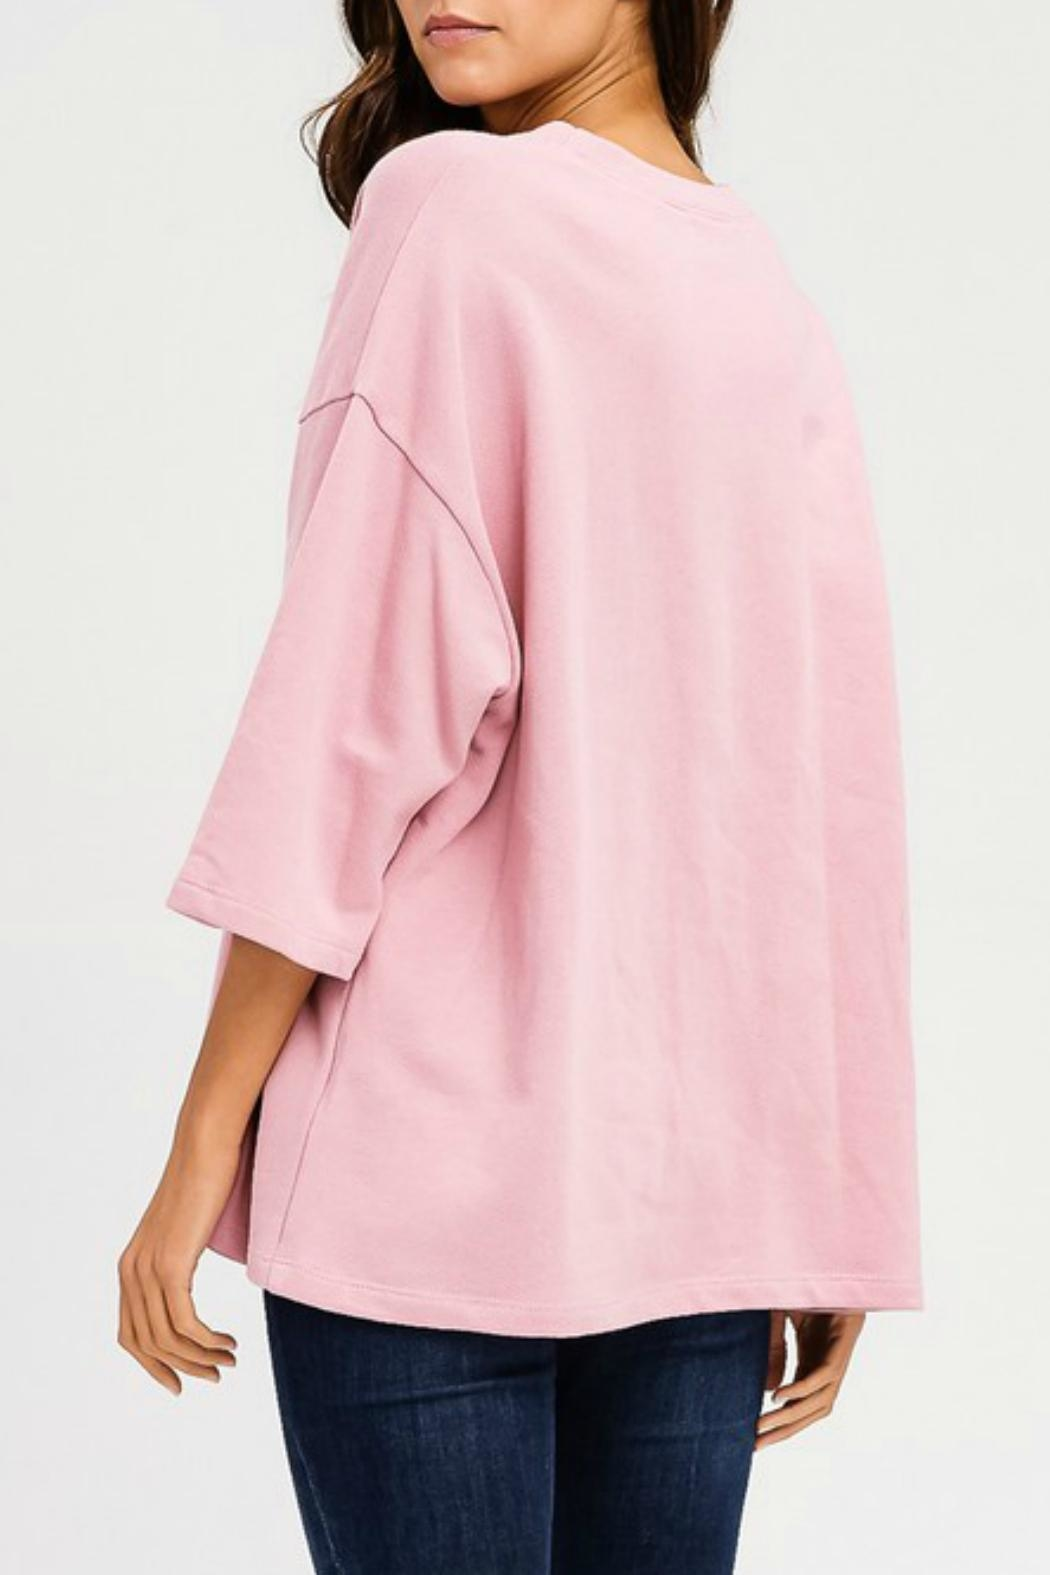 Imagine That Pink Rose Top - Front Full Image